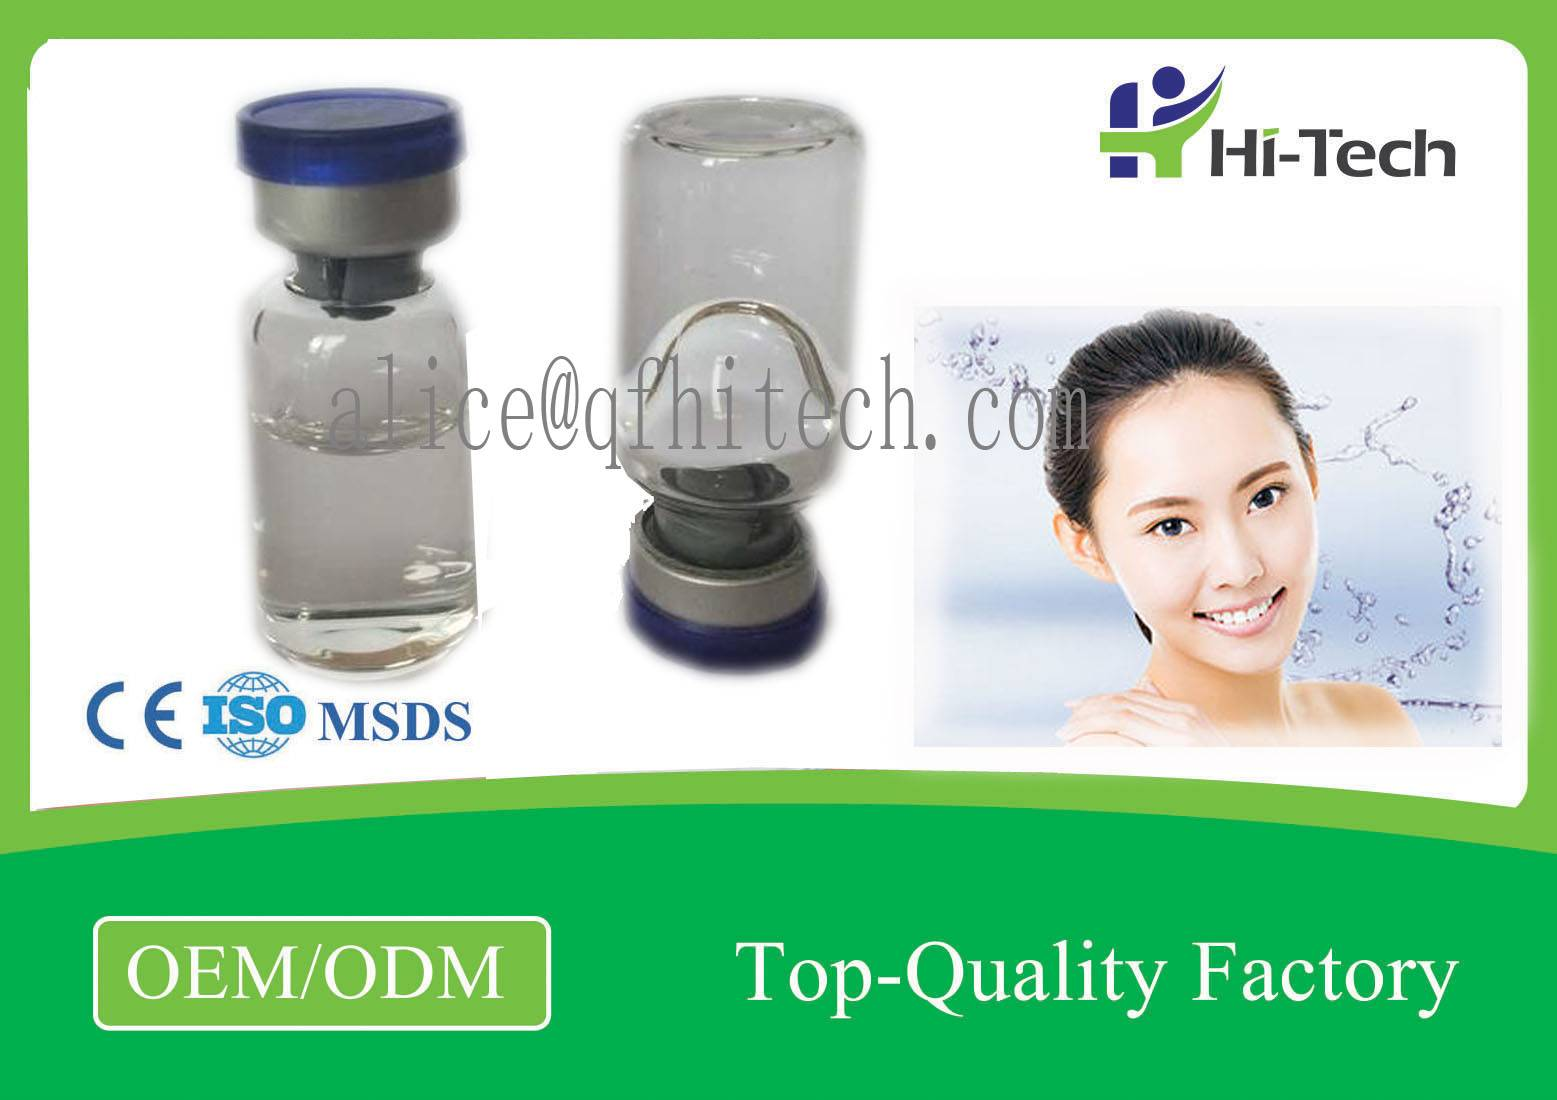 Non Cross Linked Hyaluronic Acid Injections Liquid Hydrolifting For Anti - aging 2.5ml Vial